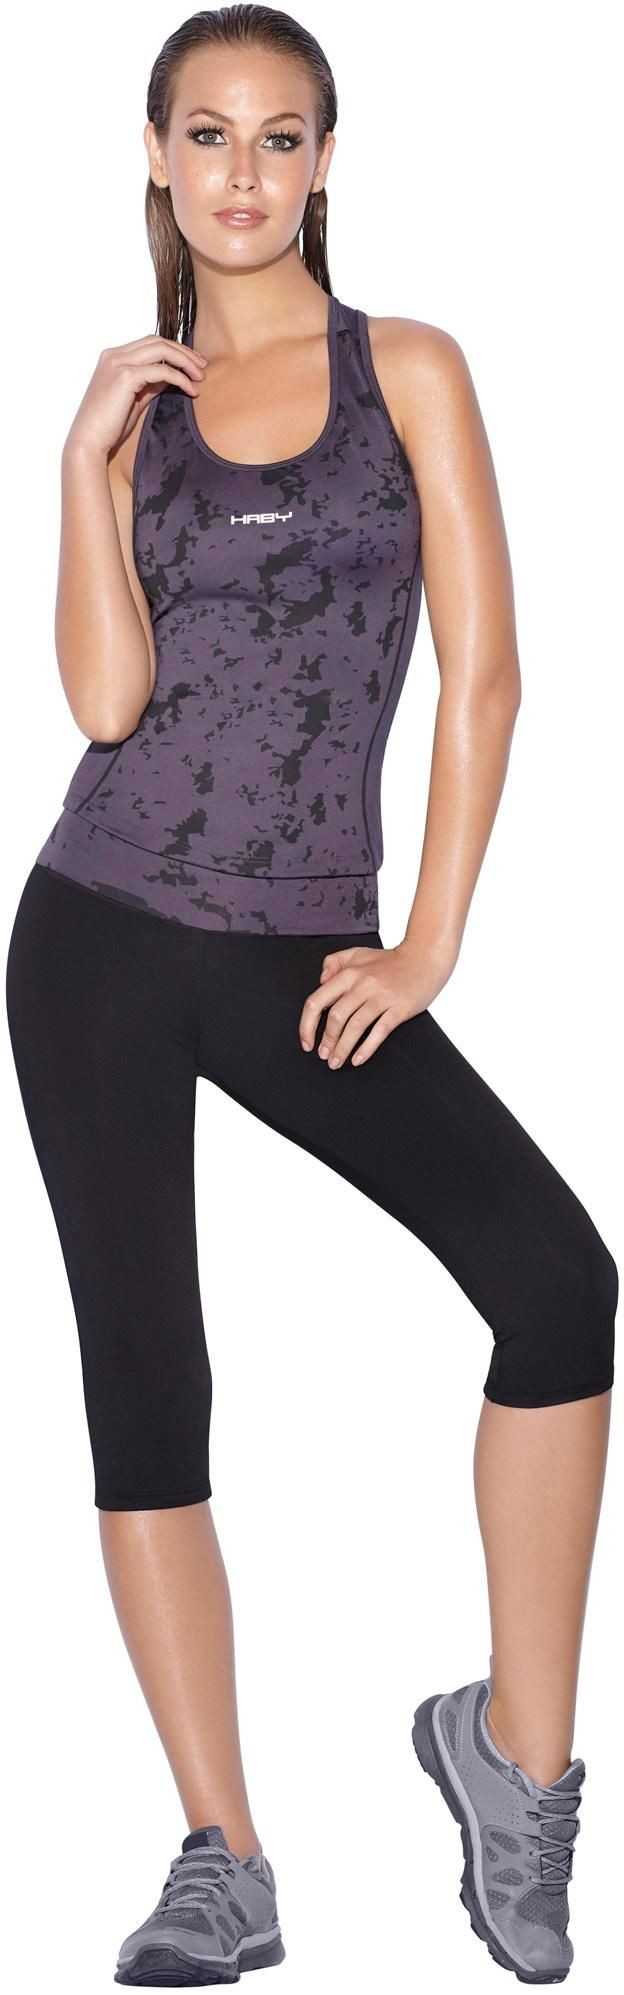 Women\u0027s Sportswear Set and/or Gym Outfit with Gray Top and Black Capri  Racerback Top Leggings Pants